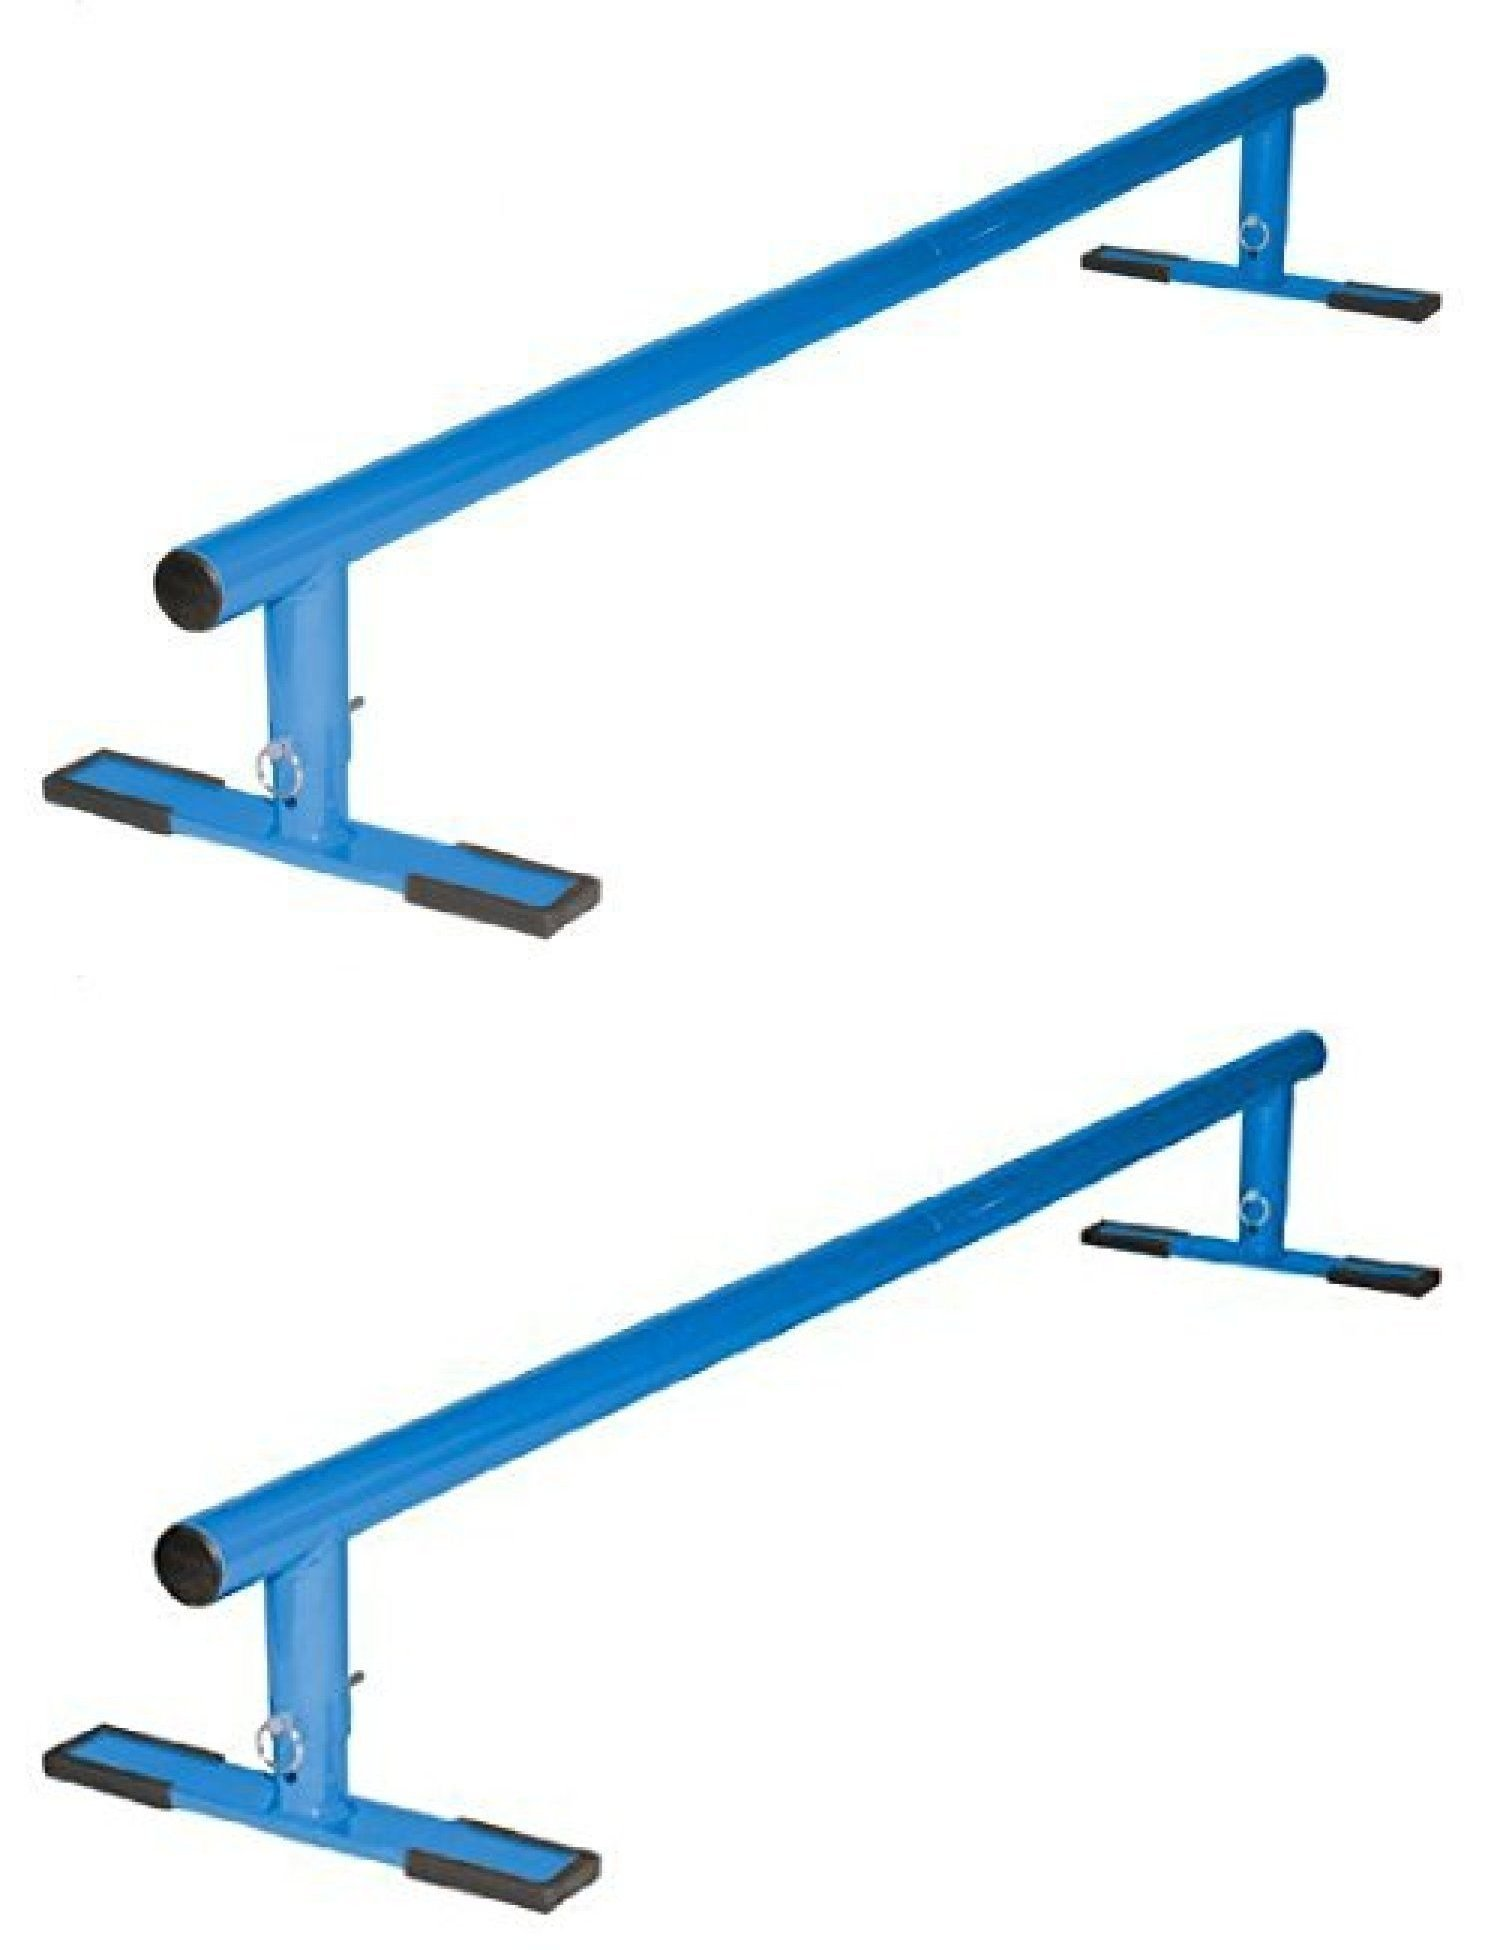 X Factor Grind Rail ORIGINAL PRICE $149.99 NOW ON SALE! by X-Factor